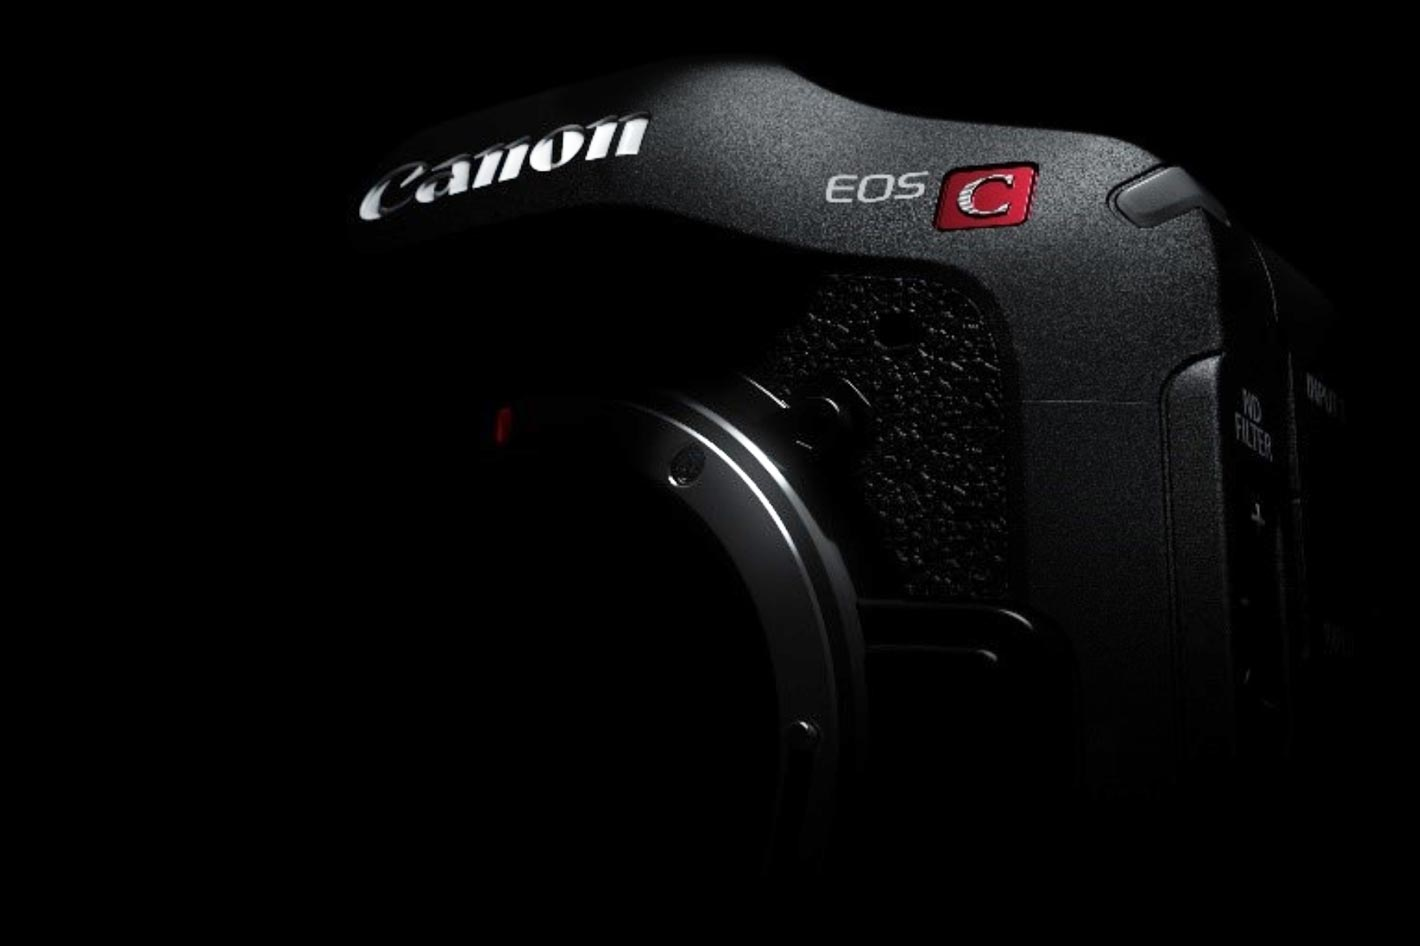 Canon to reveal new cinema camera on September 24